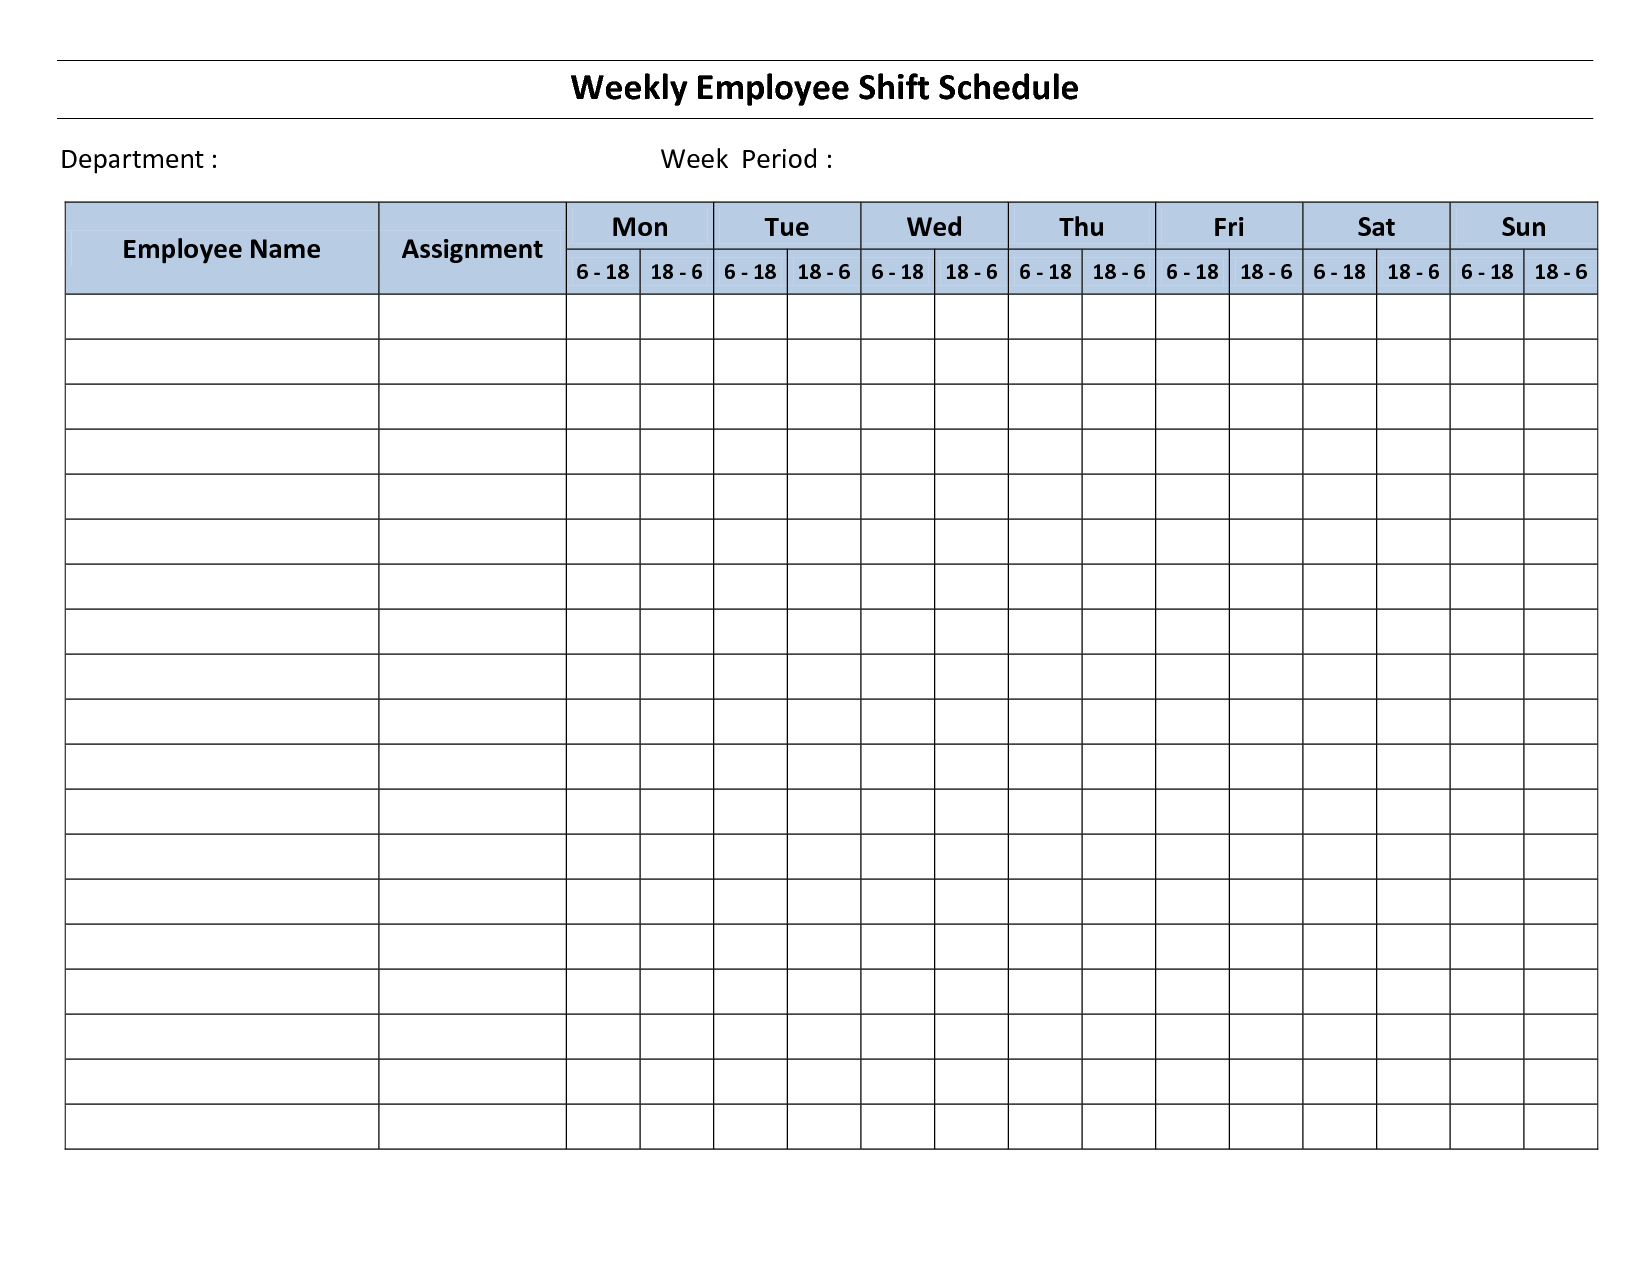 Agenda Meeting Template Word Impressive Printable Weekly Employee Schedule Template  Wyldewood Op .